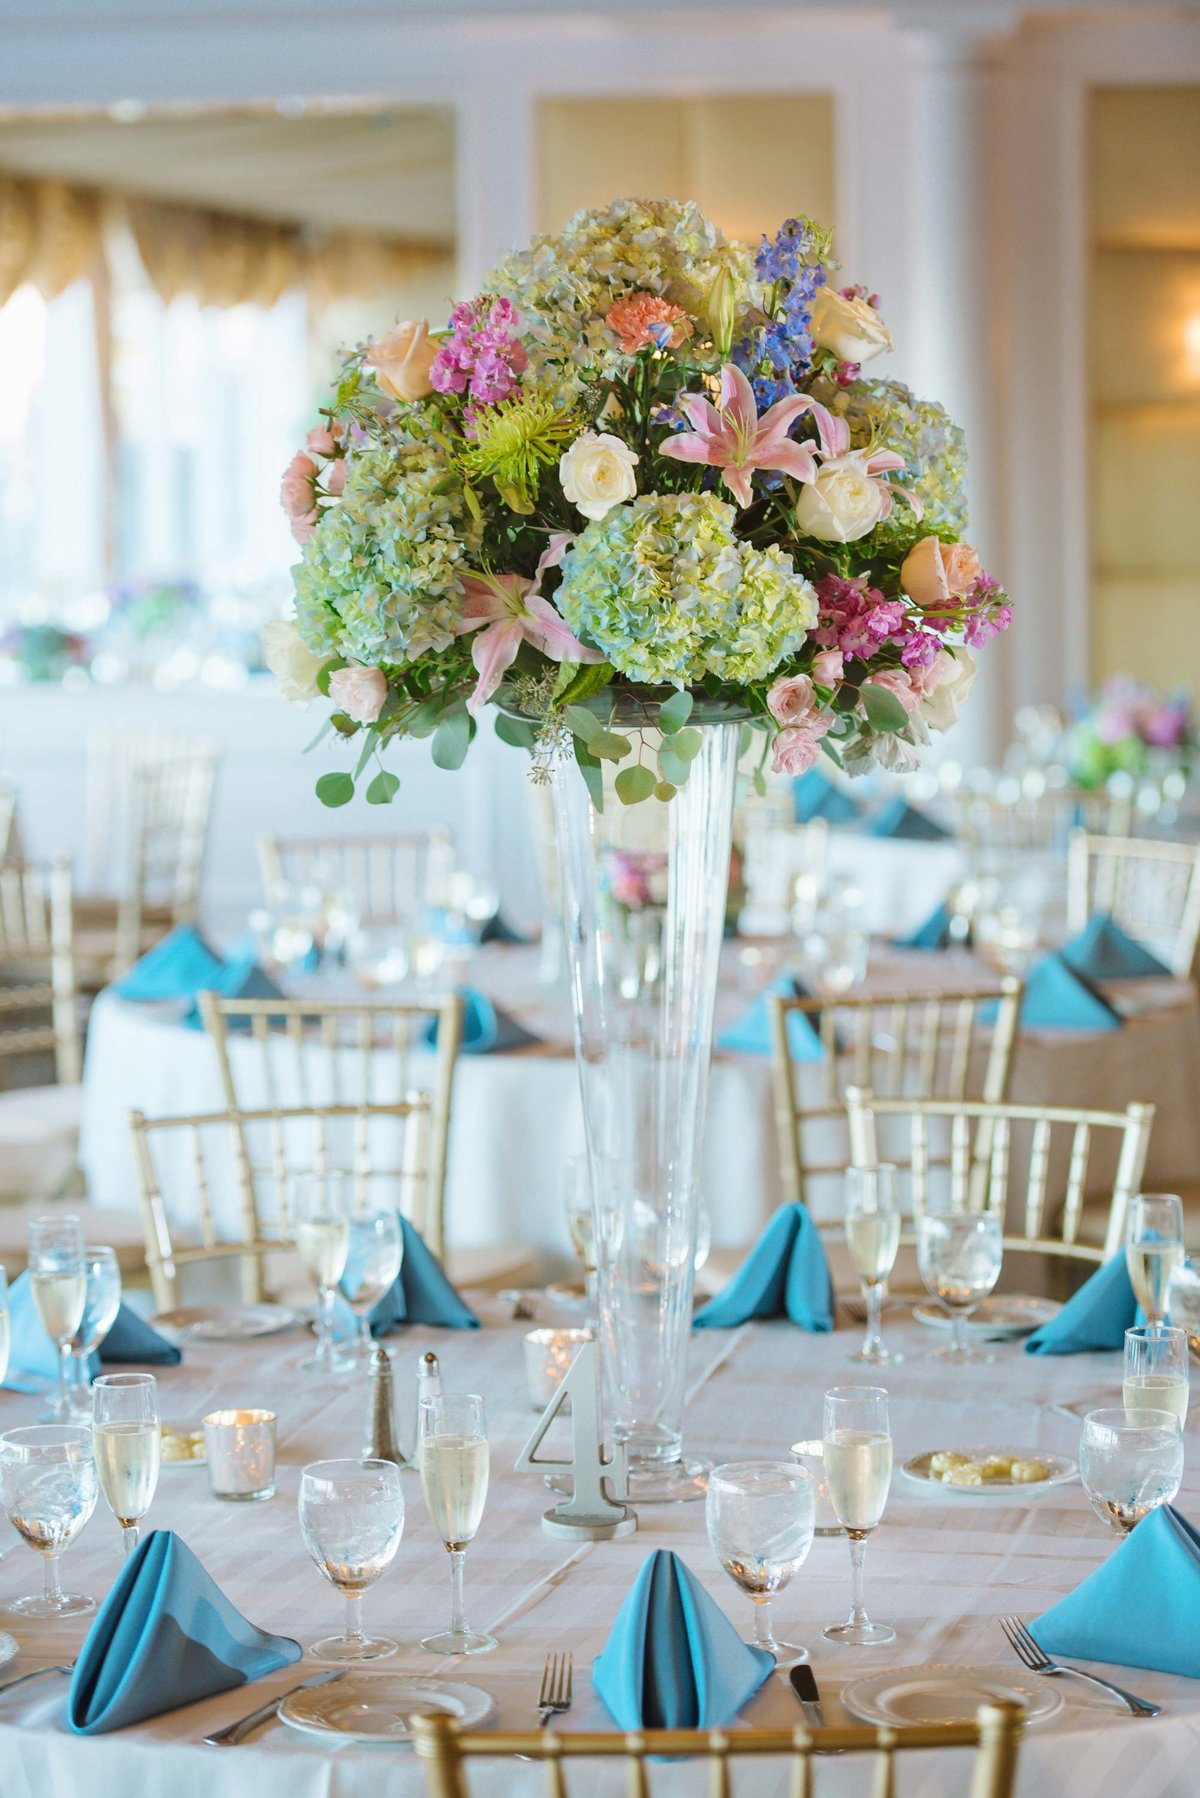 Wedding centerpieces at Bridgeview Yacht Club